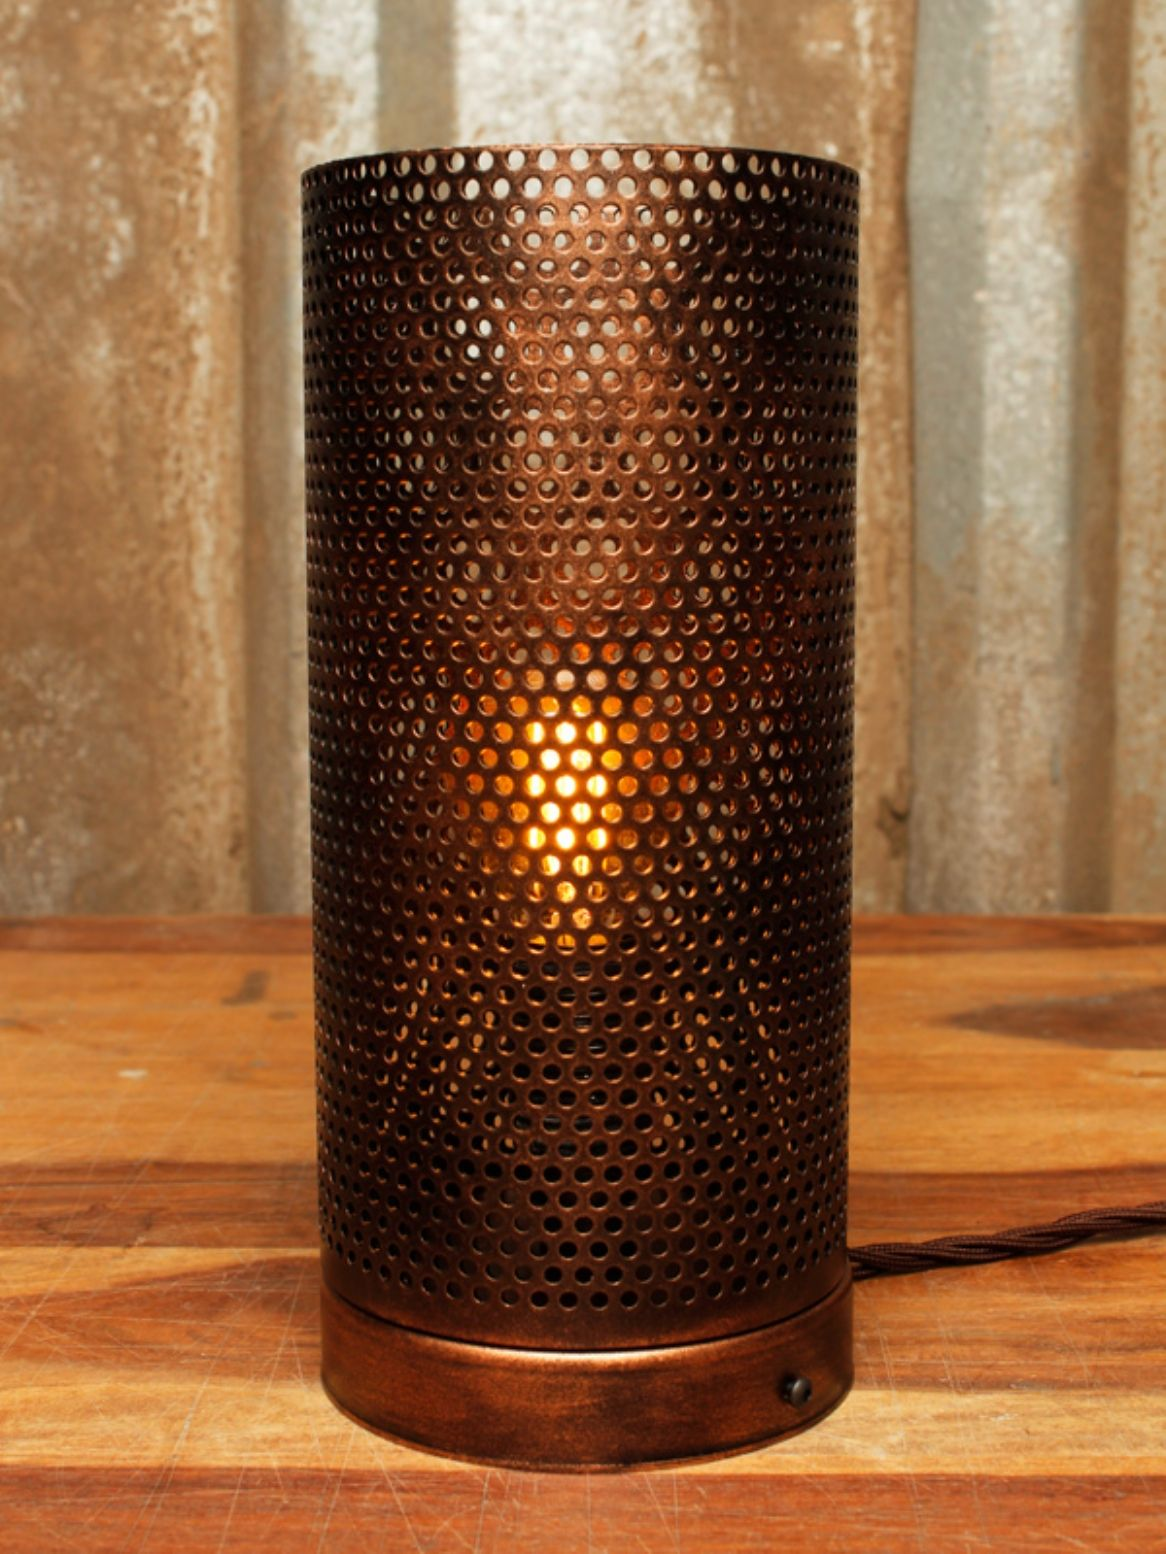 Industrial Style Table Lamp With A Perforated Mesh Shade In A Bronze Spray Finish Industrial Style Lamps Industrial Style Table Lamp Table Lamp